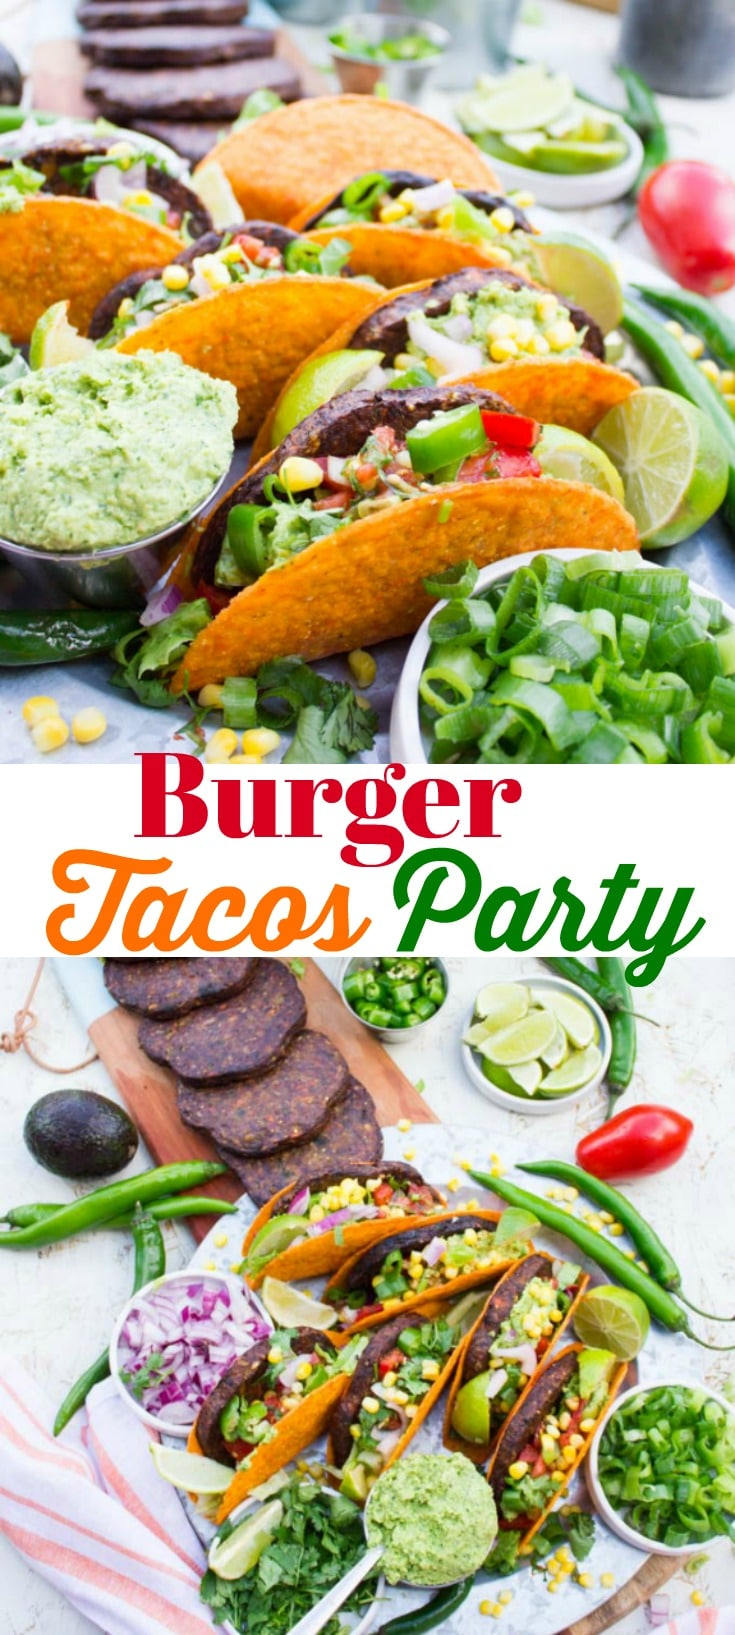 This is not your average Tacos Party, it's a Burger Tacos Party! Veggie burgers grilled to perfection in a crunchy taco shell with all your favorite tacos fixings and more. Make some room for this one of a kind, almost too good to be true tacos party! #tacos #burgers #vegan #tacosparty